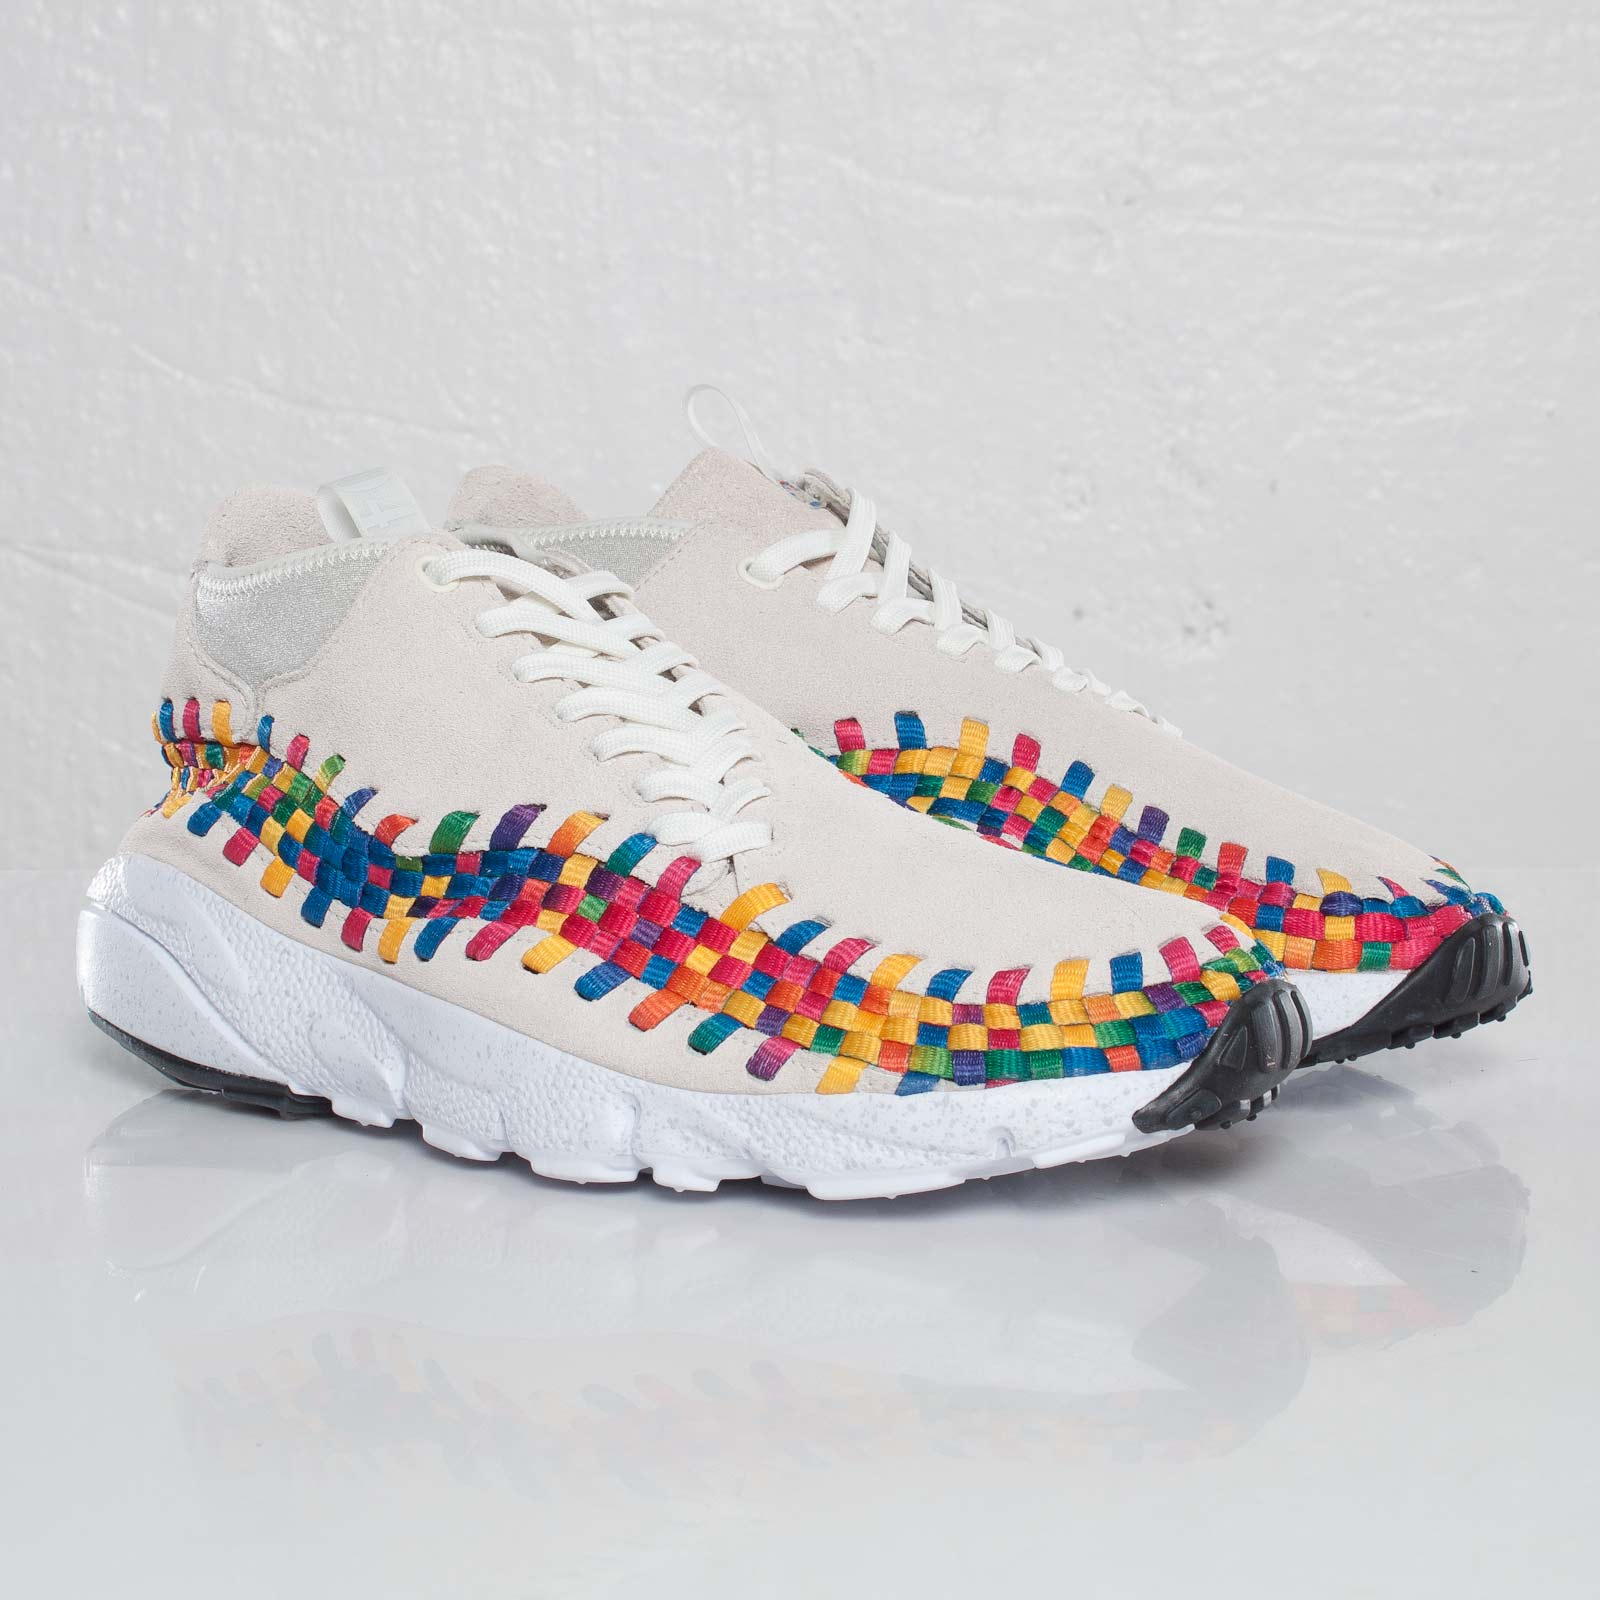 new style 18c4d cb4f0 Nike Air Footscape Woven Chukka Prm QS